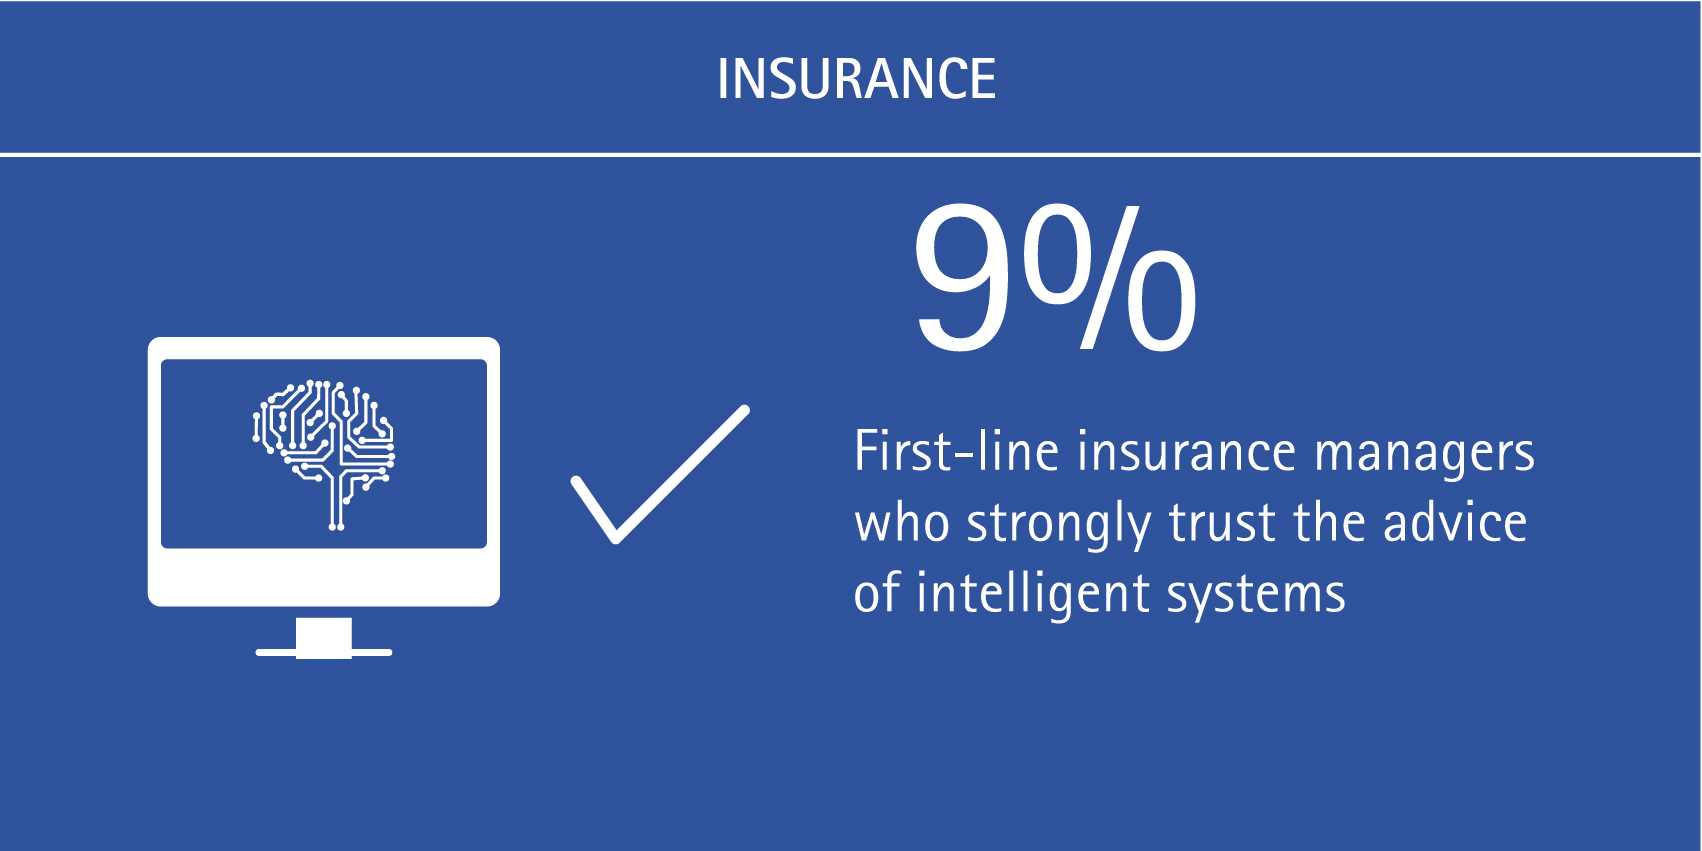 9% of first-line insurance managers strongly trust the advice of intelligent systems